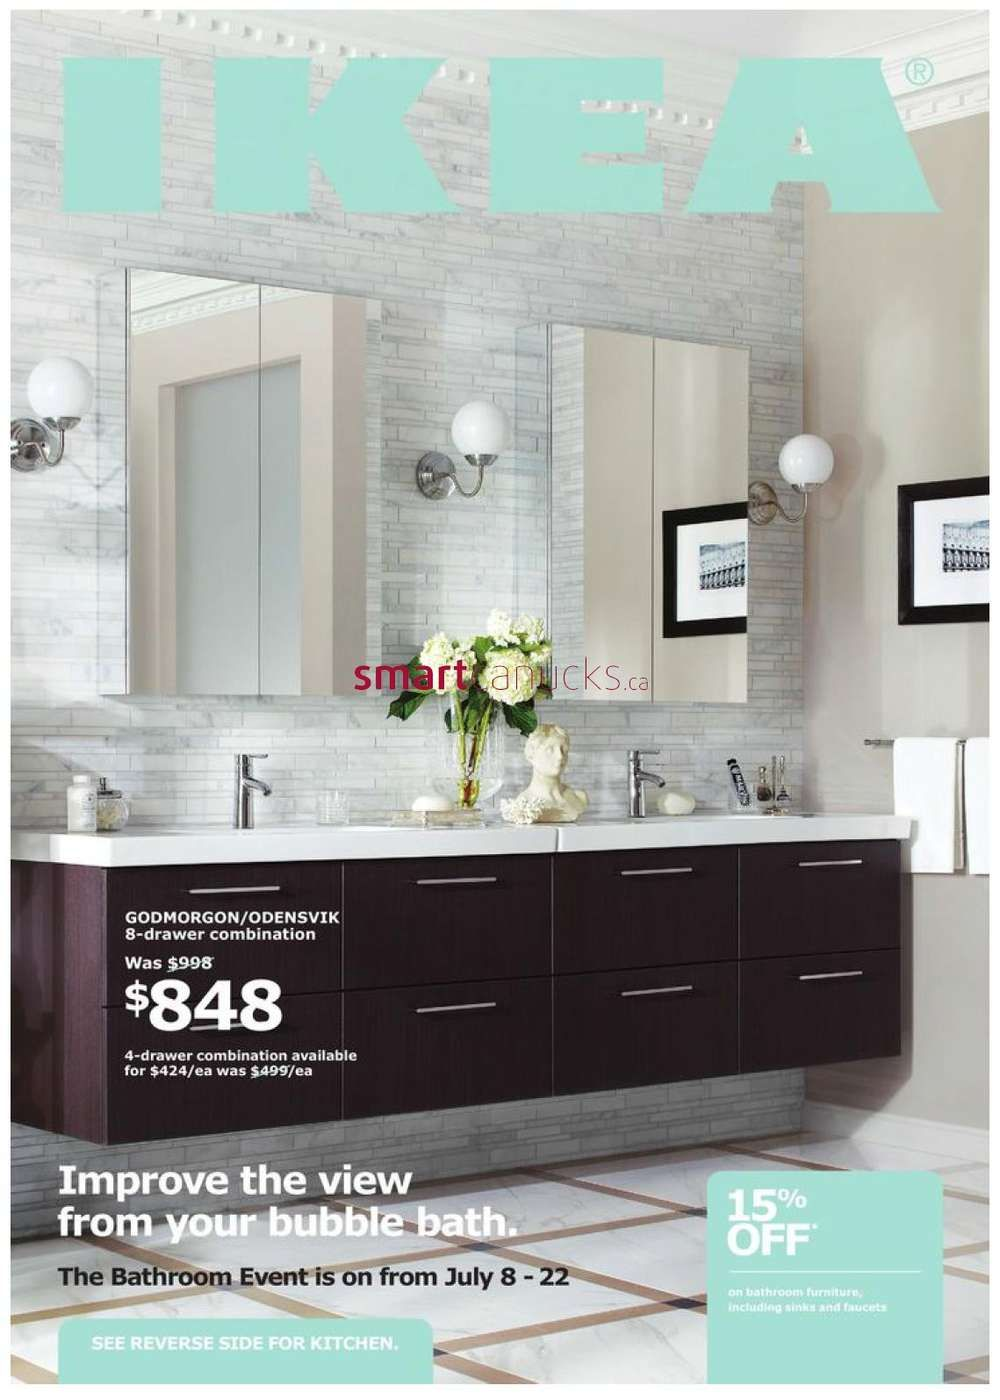 Ikea Bathroom Event Flyer July 8 To 22